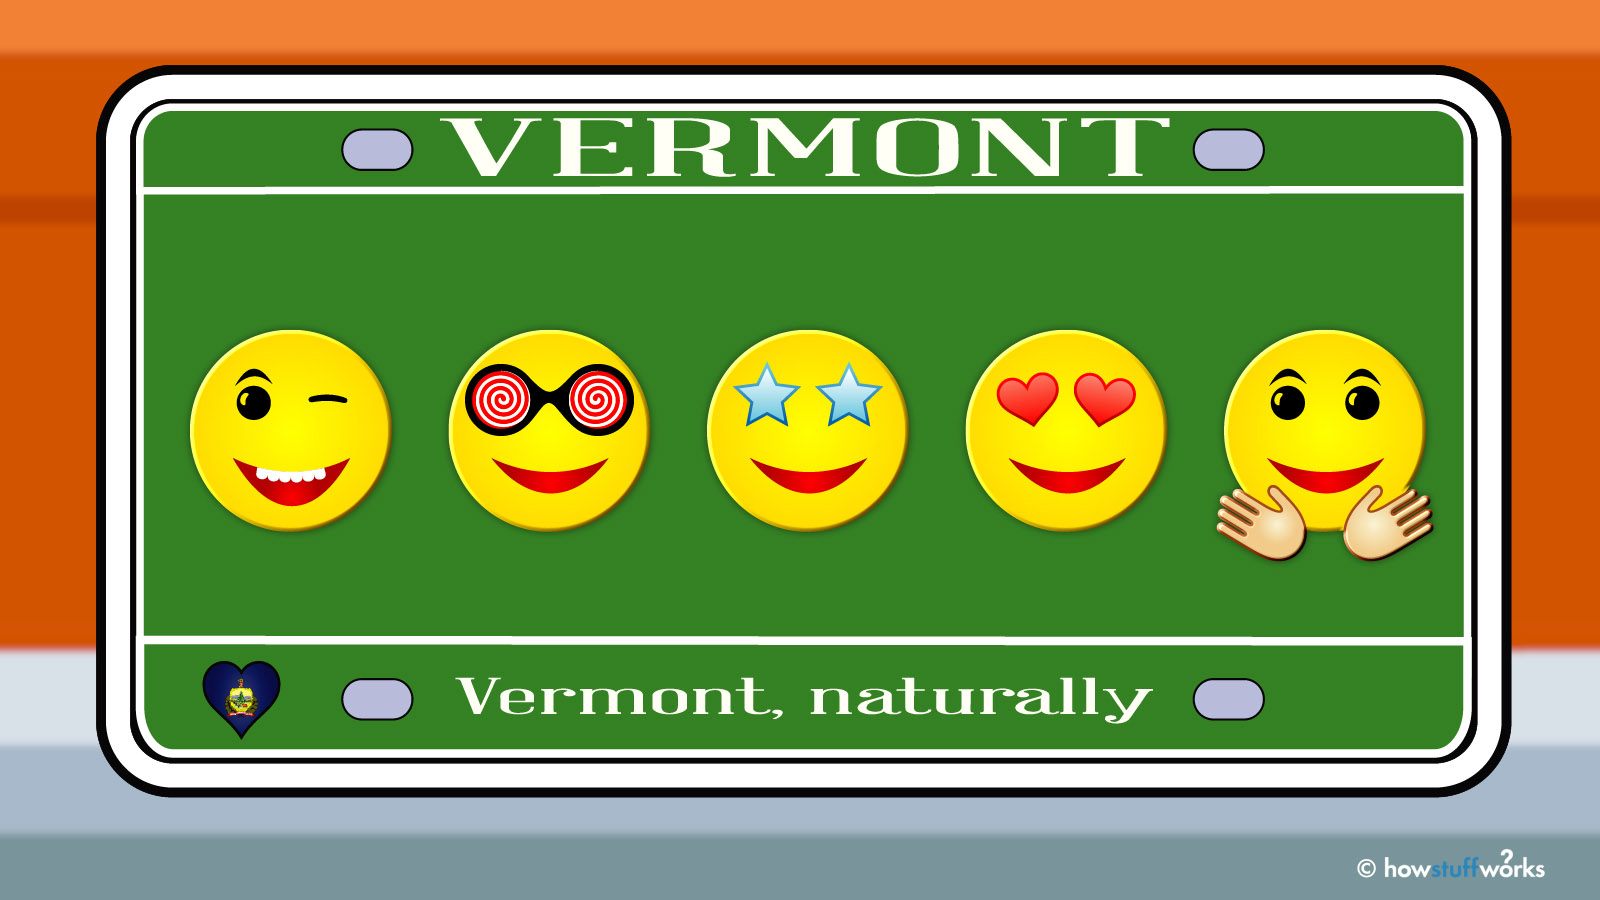 Want an Emoji on Your License Plate? Move to Vermont!